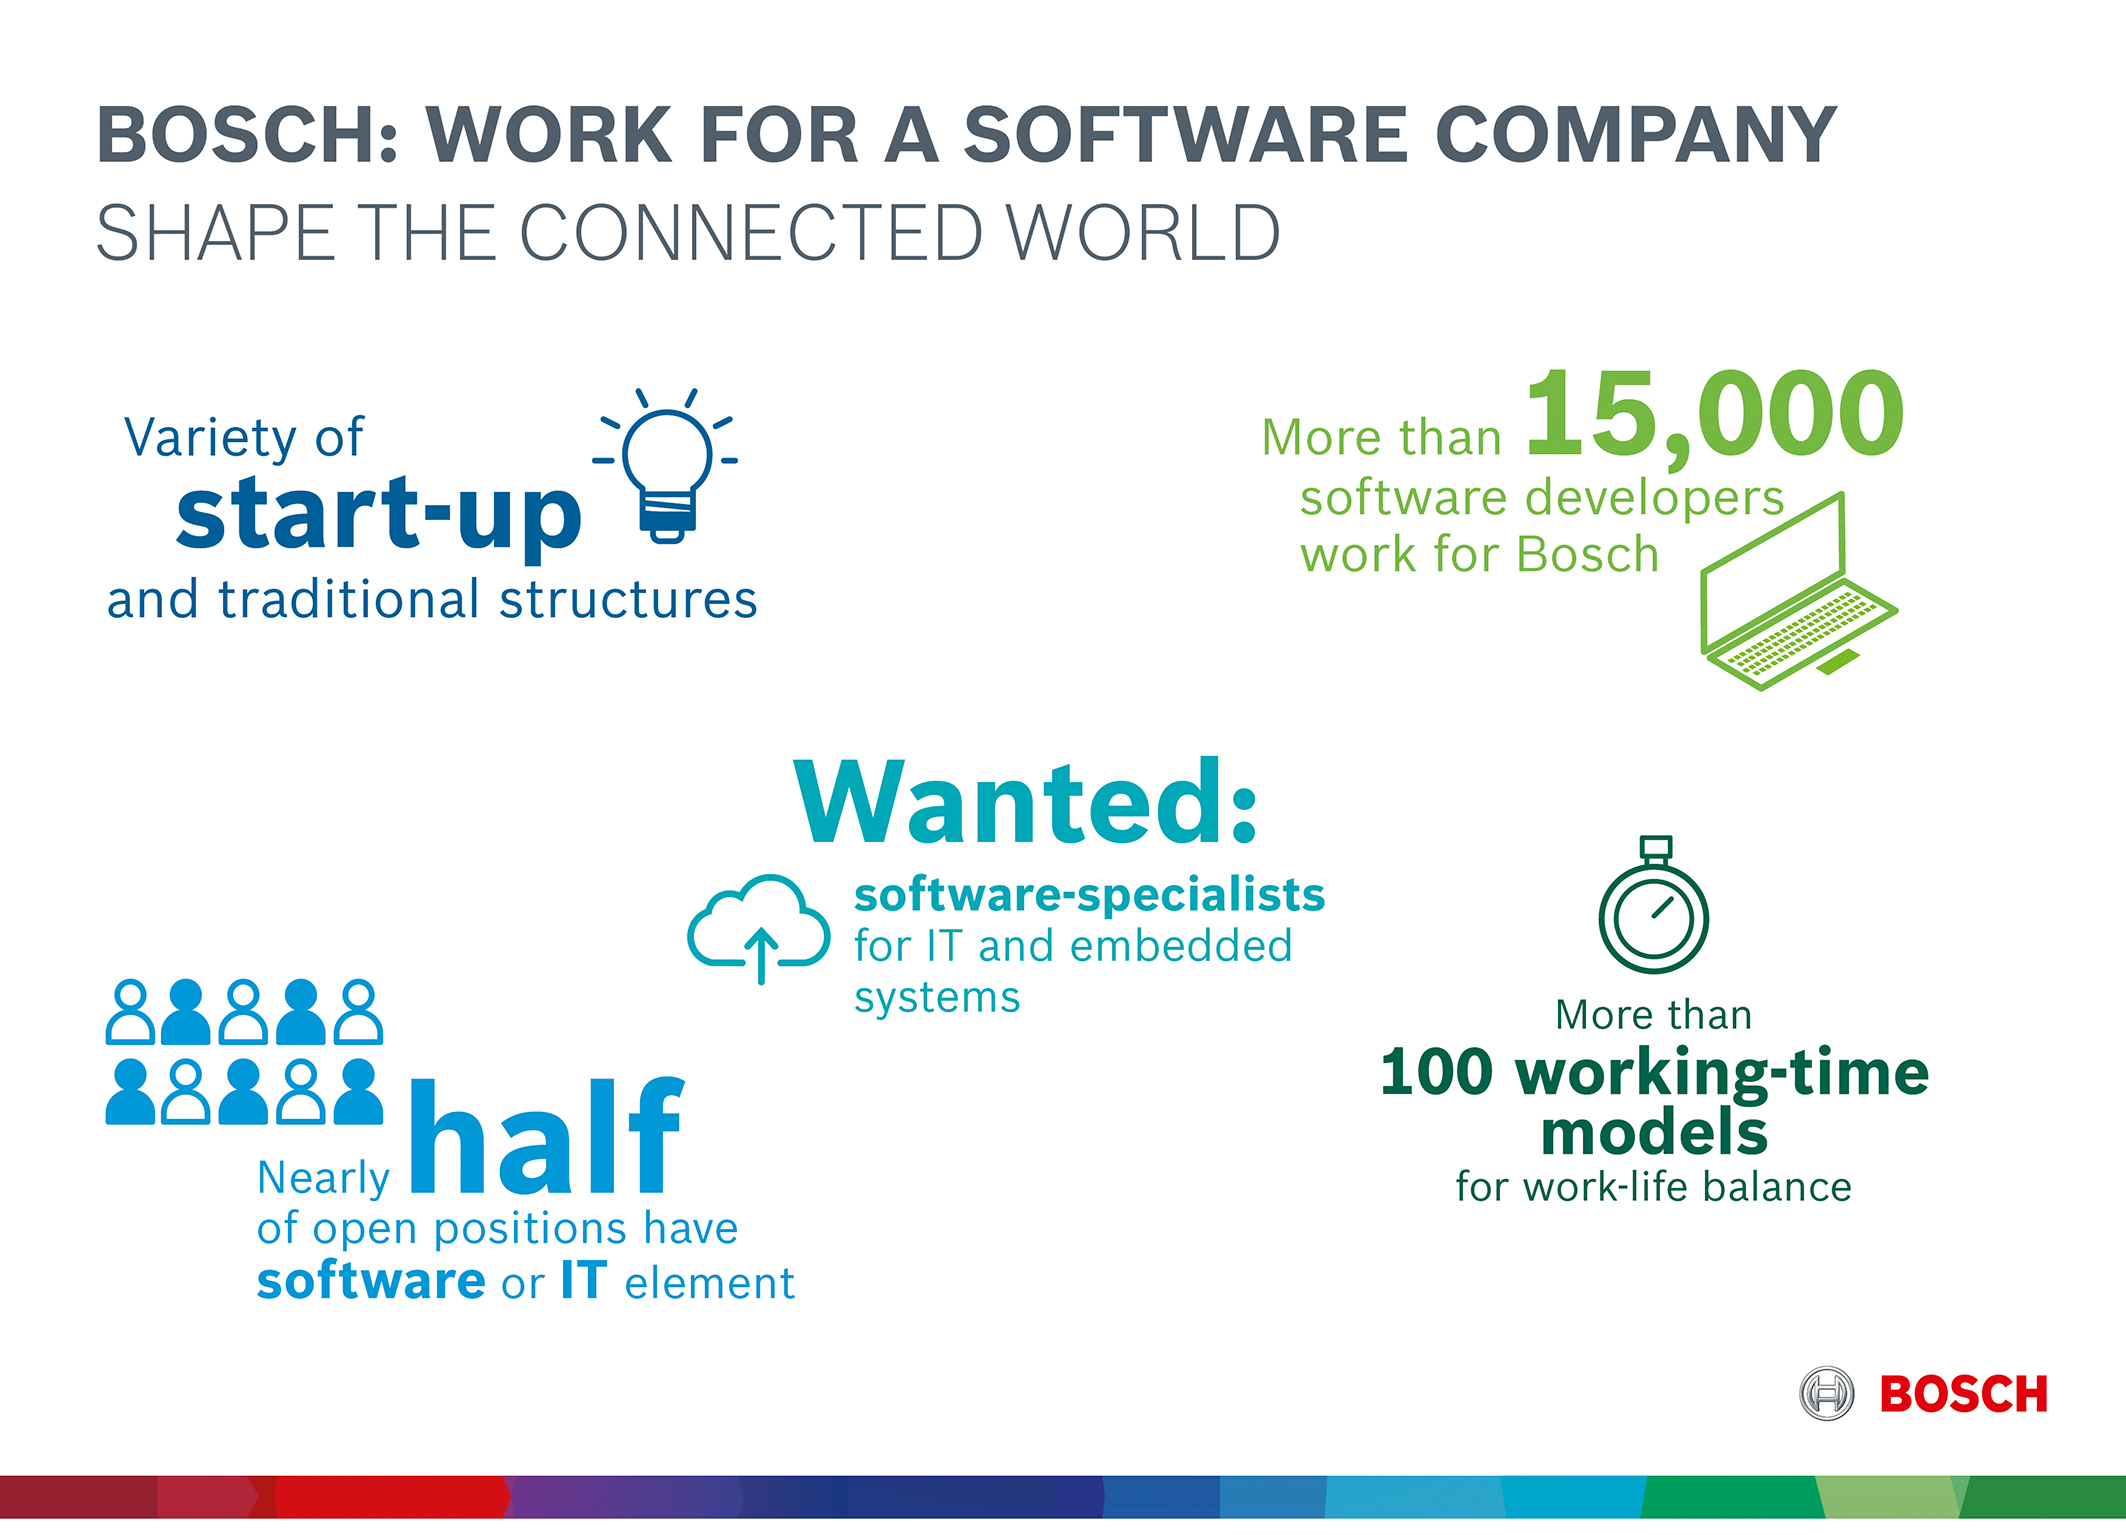 Bosch: working at a software company